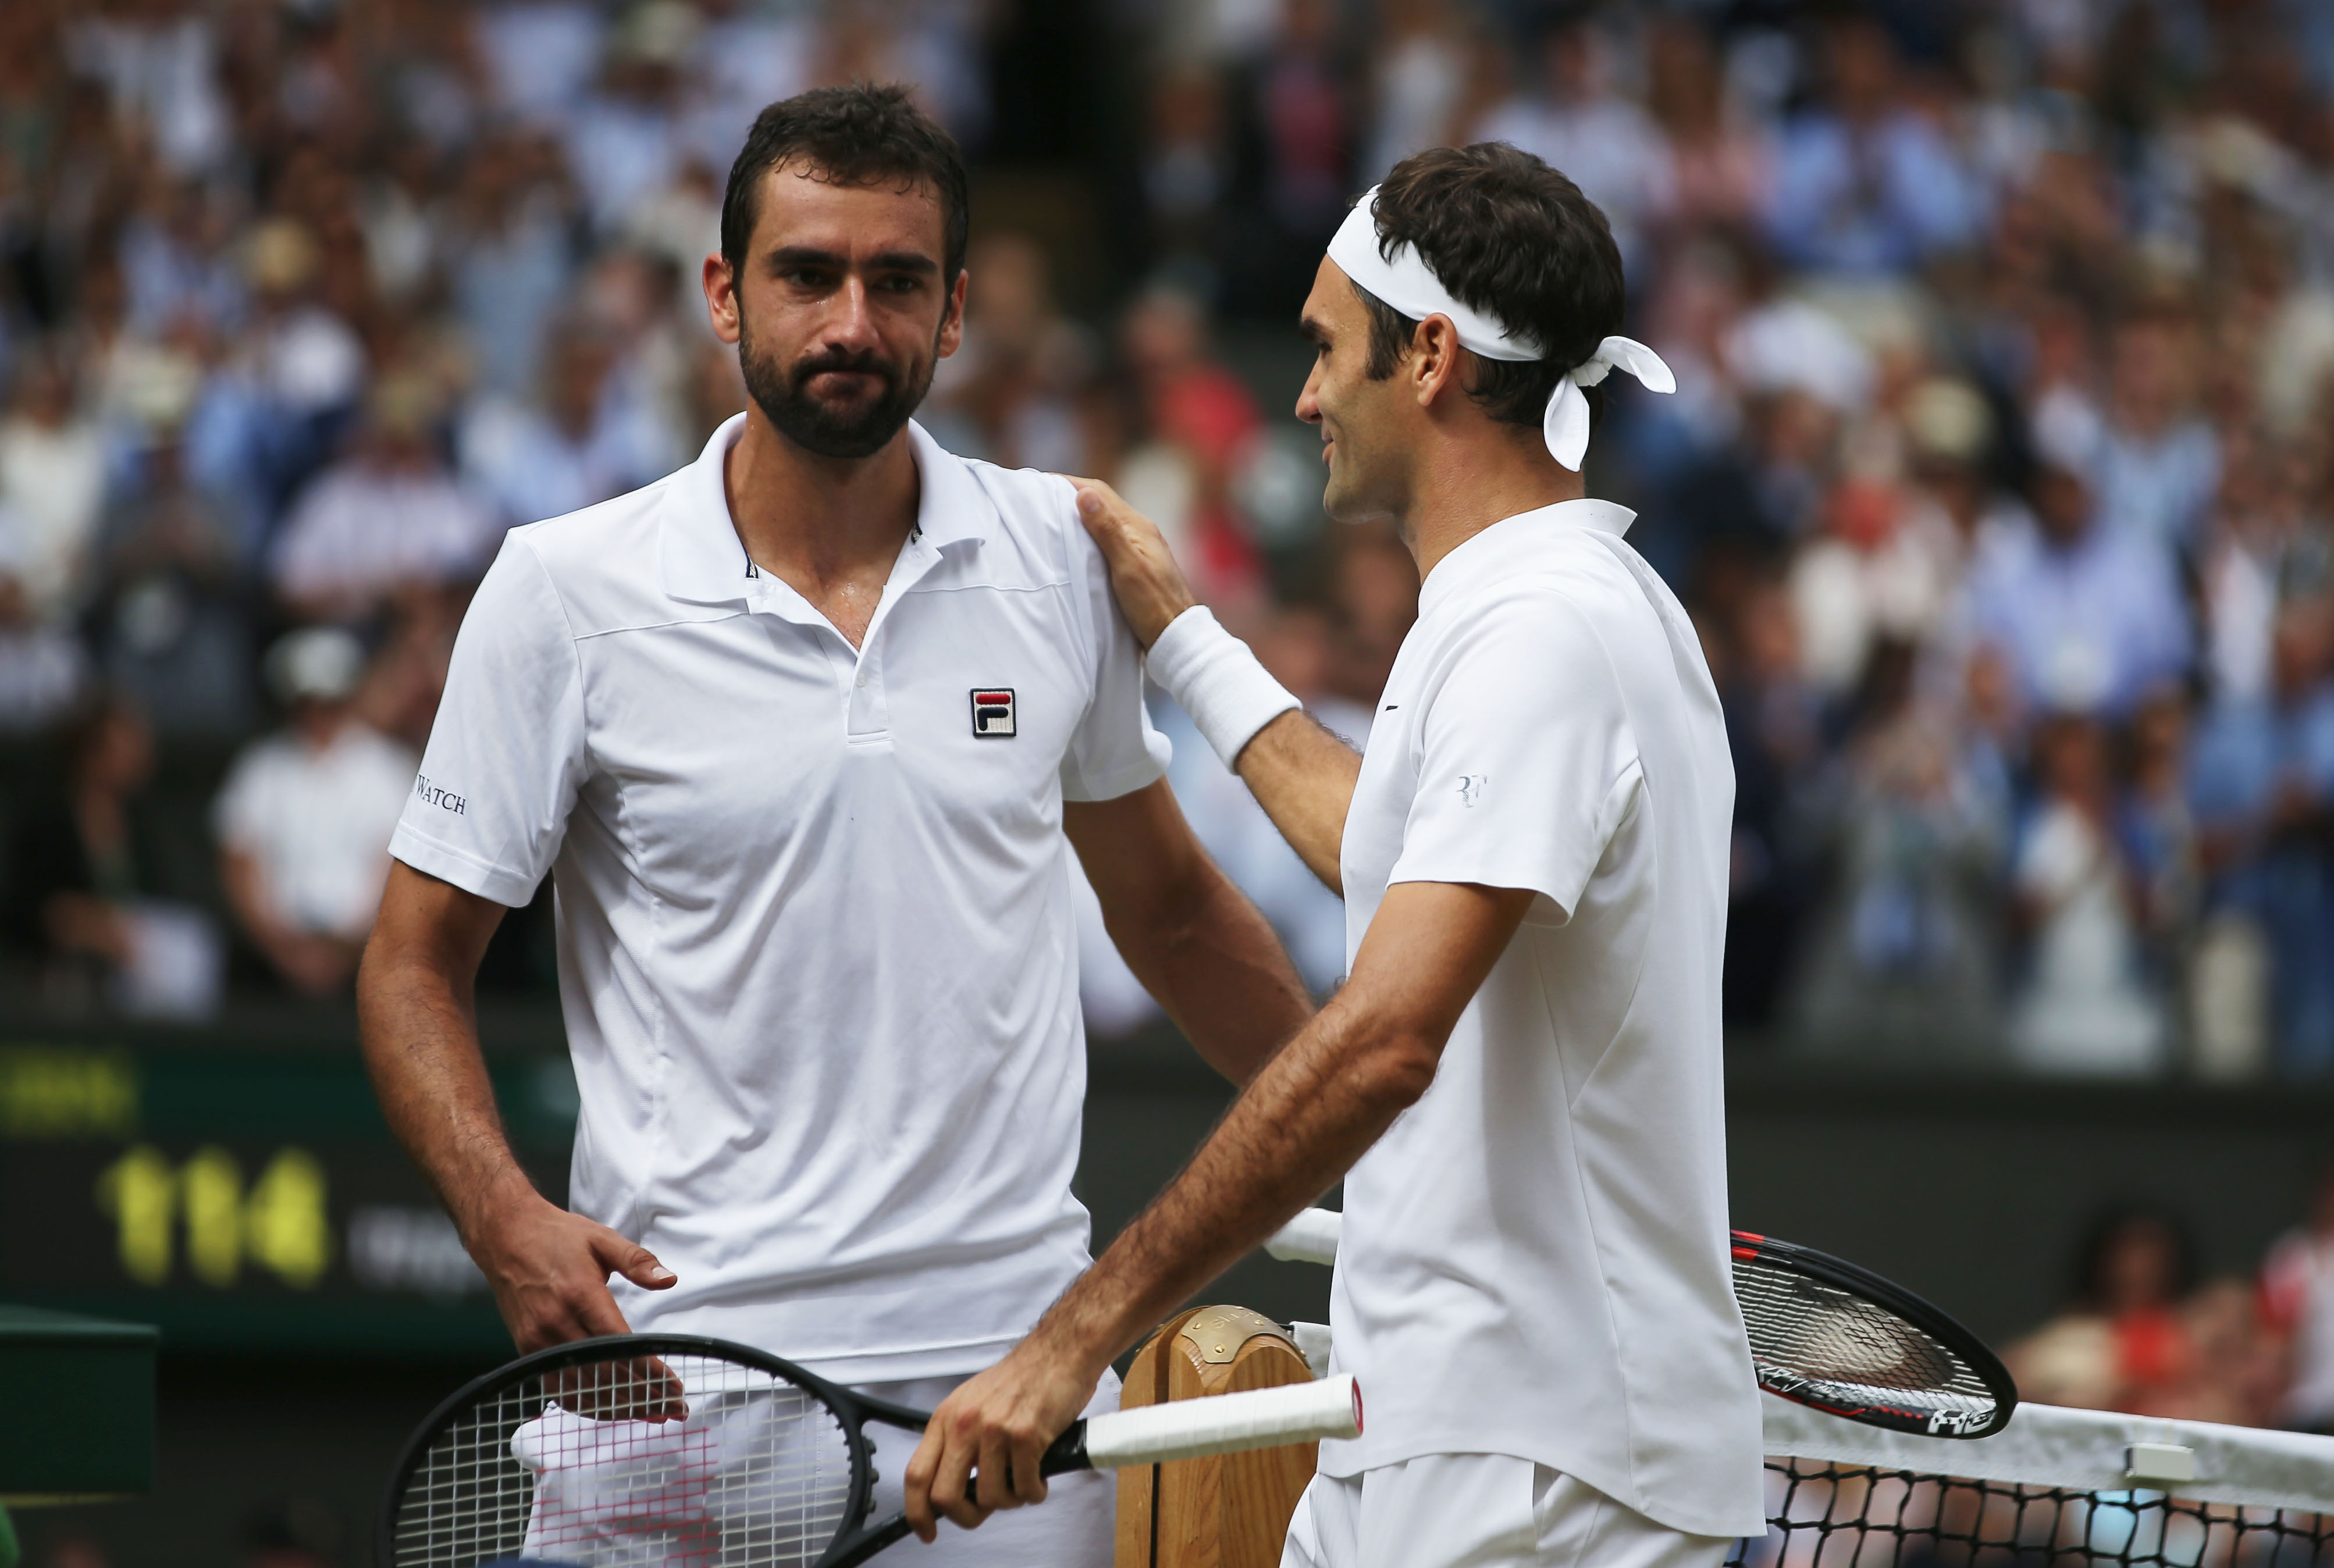 LONDON, ENGLAND - JULY 16: Roger Federer of Switzerland and Marin Cilic of Croatia shake hands after the Gentlemen's Singles final on day thirteen of the Wimbledon Lawn Tennis Championships at the All England Lawn Tennis and Croquet Club at Wimbledon on July 16, 2017 in London, England. (Photo by Daniel Leal-Olivas - Pool/Getty Images)